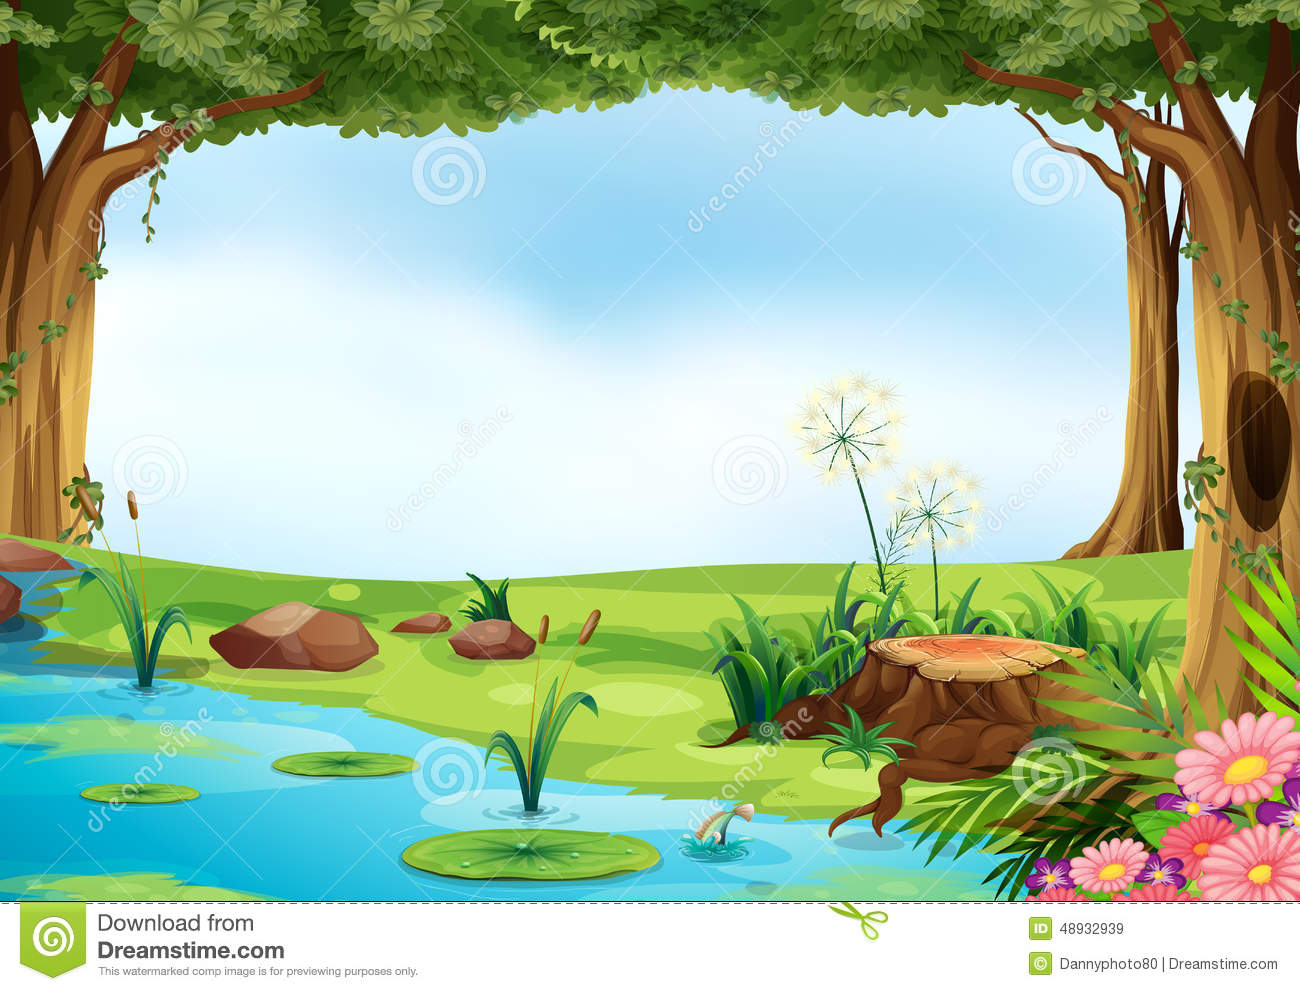 Free coloring pages ugly duckling - Pond Illustration Outdoor Scene 48932939 Jpg 1300 991 Printables Cut Outs Coloring Pages Playmats Pinterest Scene Search And Ponds